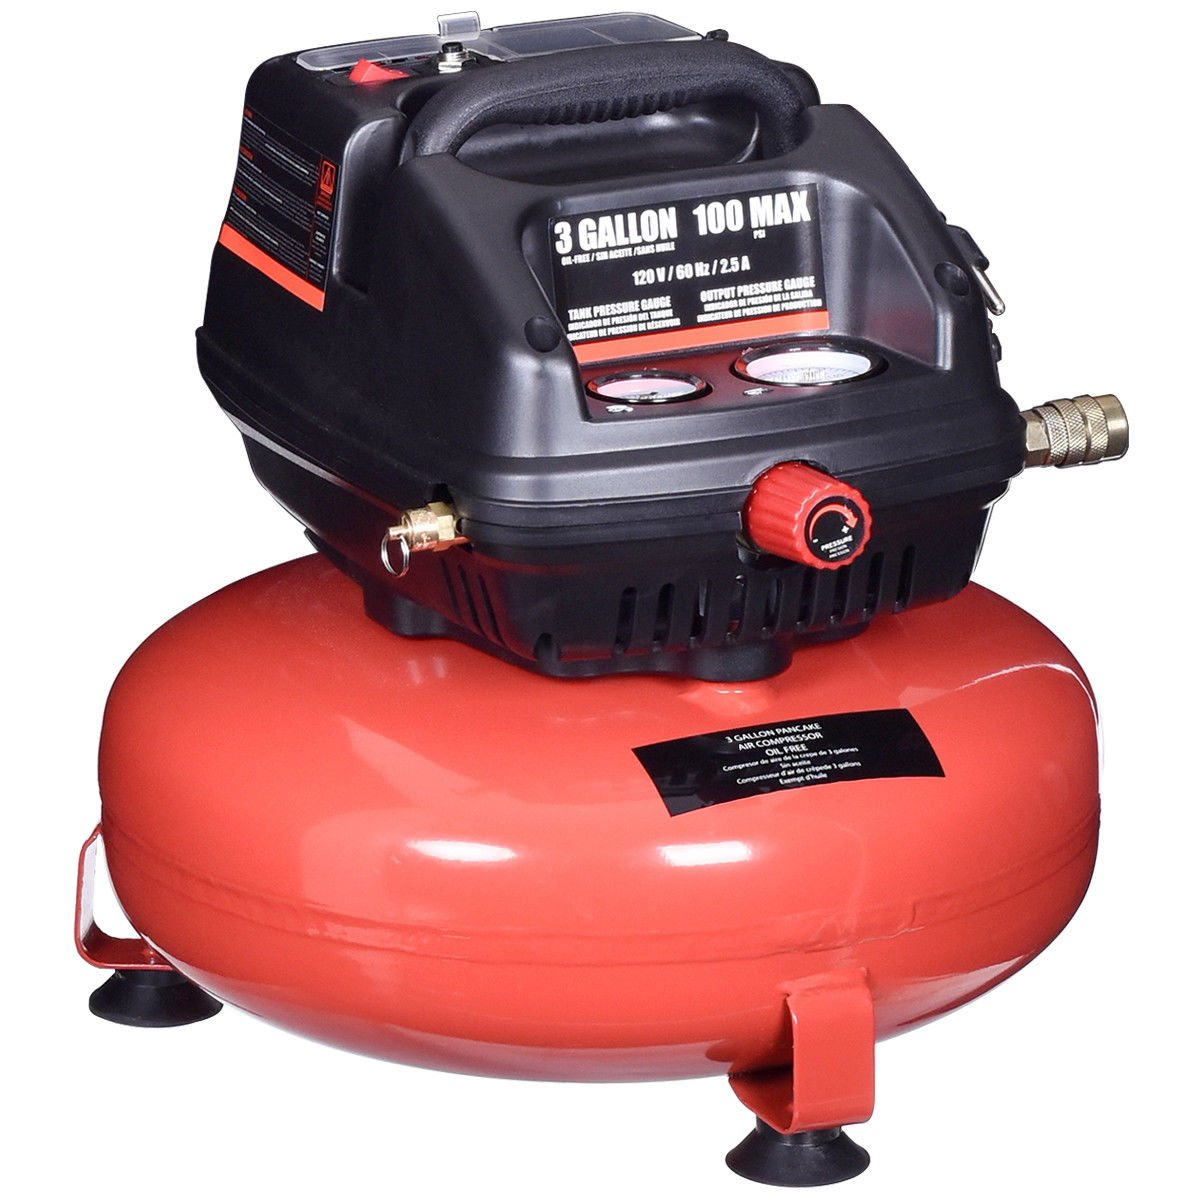 Goplus Oil-Free Air Pancake Compressor Portable Quiet (6 Gallon 150 PSI 1.5HP Compressor) Superbuy